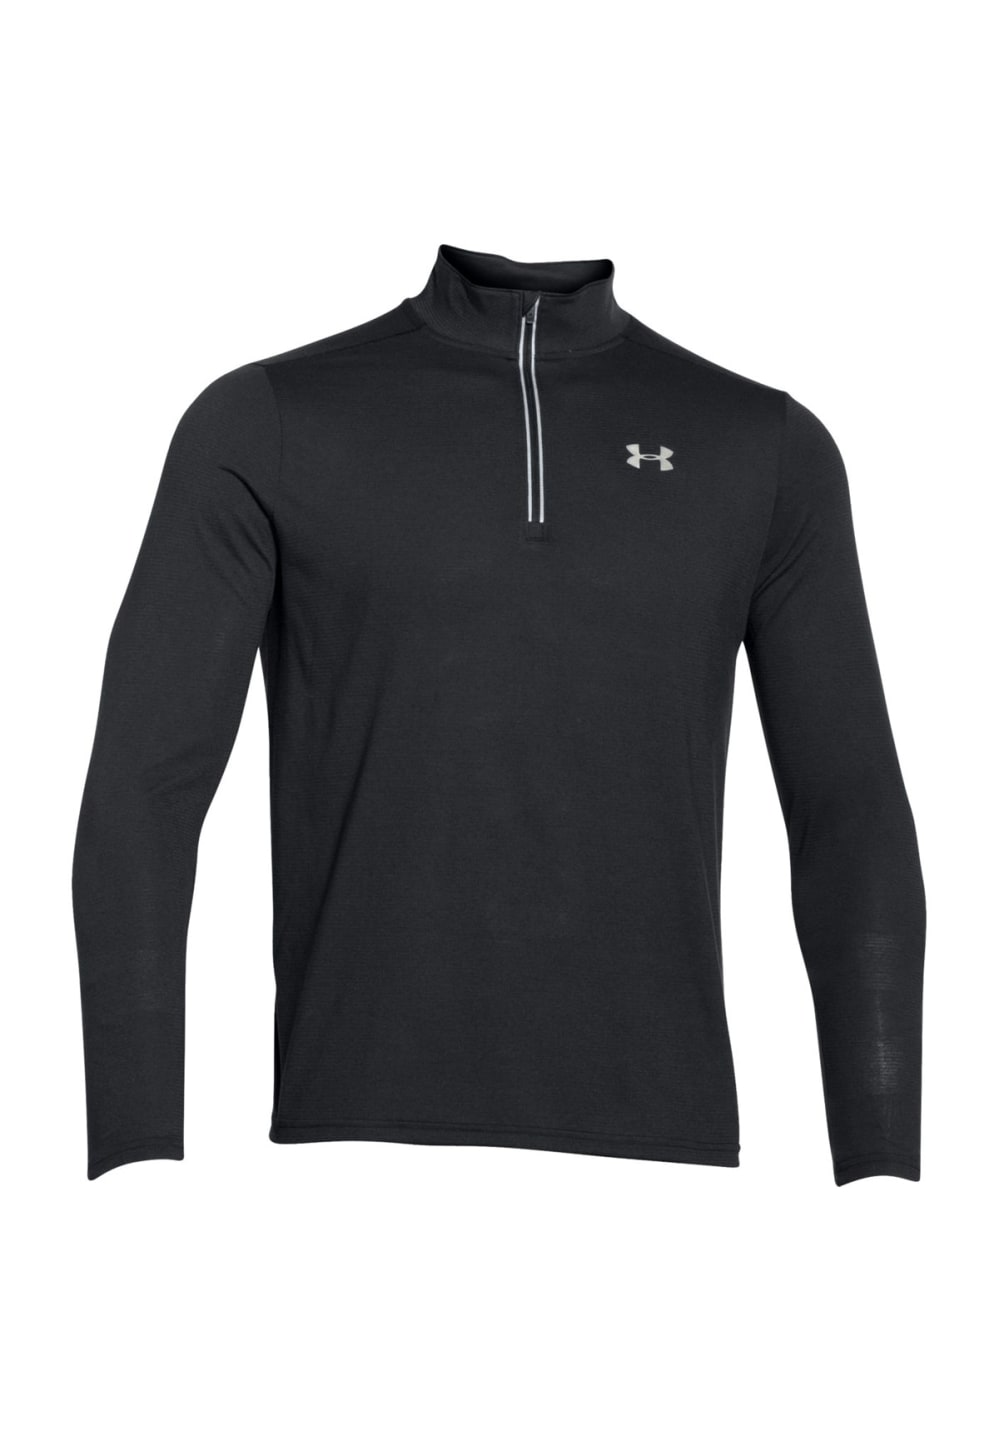 Under Armour Streaker 1/4 Zip Hommes Maillot course